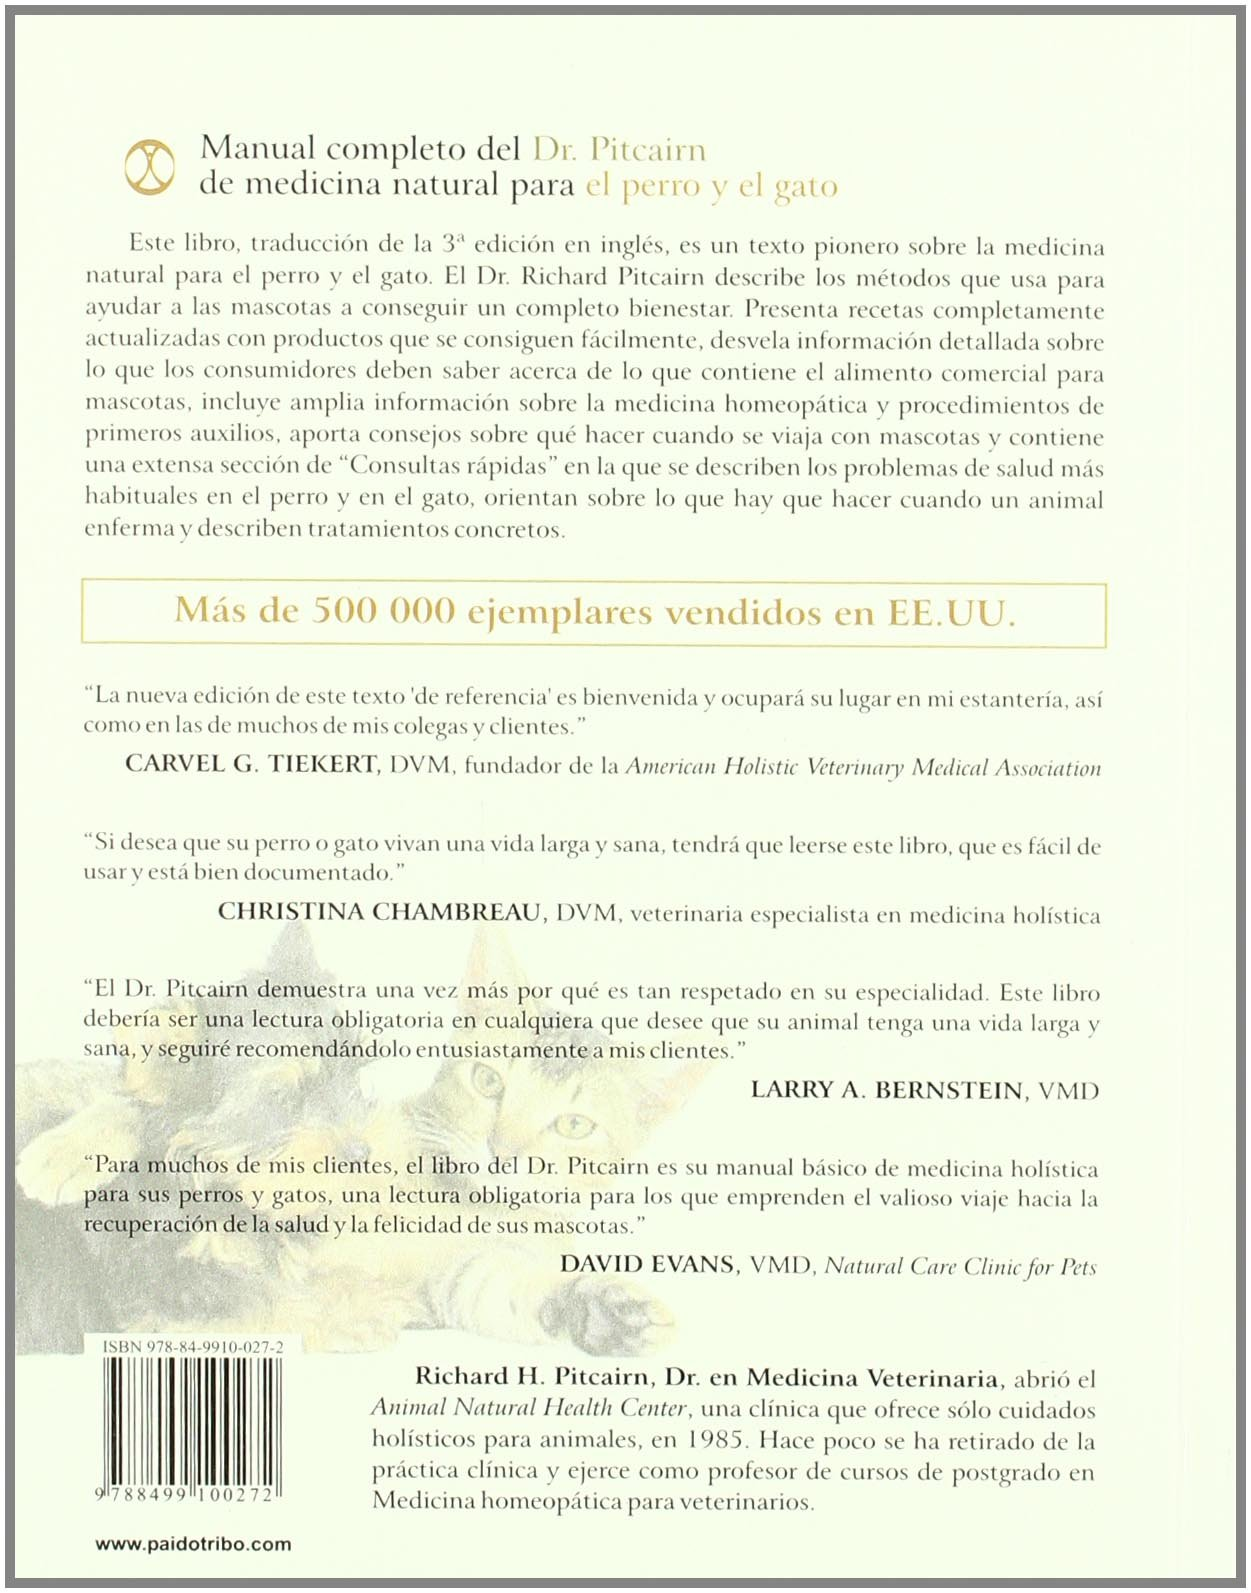 MANUAL COMPLETO DEL Dr. Pitcairn DE MEDICINA NATURAL PARA EL PERRO Y EL GATO (Spanish Edition): Richard H..Pitcairn, Susan H..